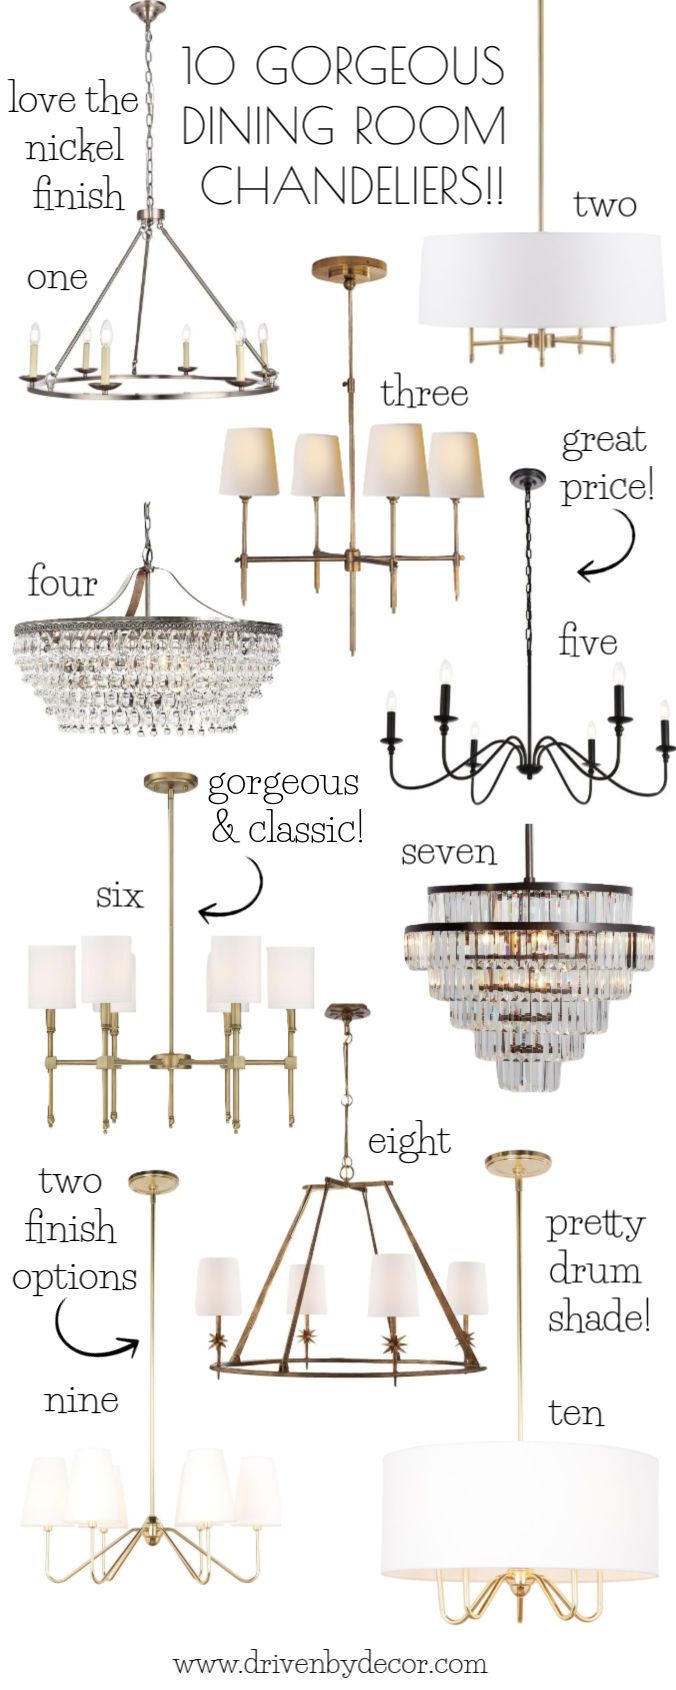 Dining Room Chandeliers: My Ten Favorites! | Driven by Decor